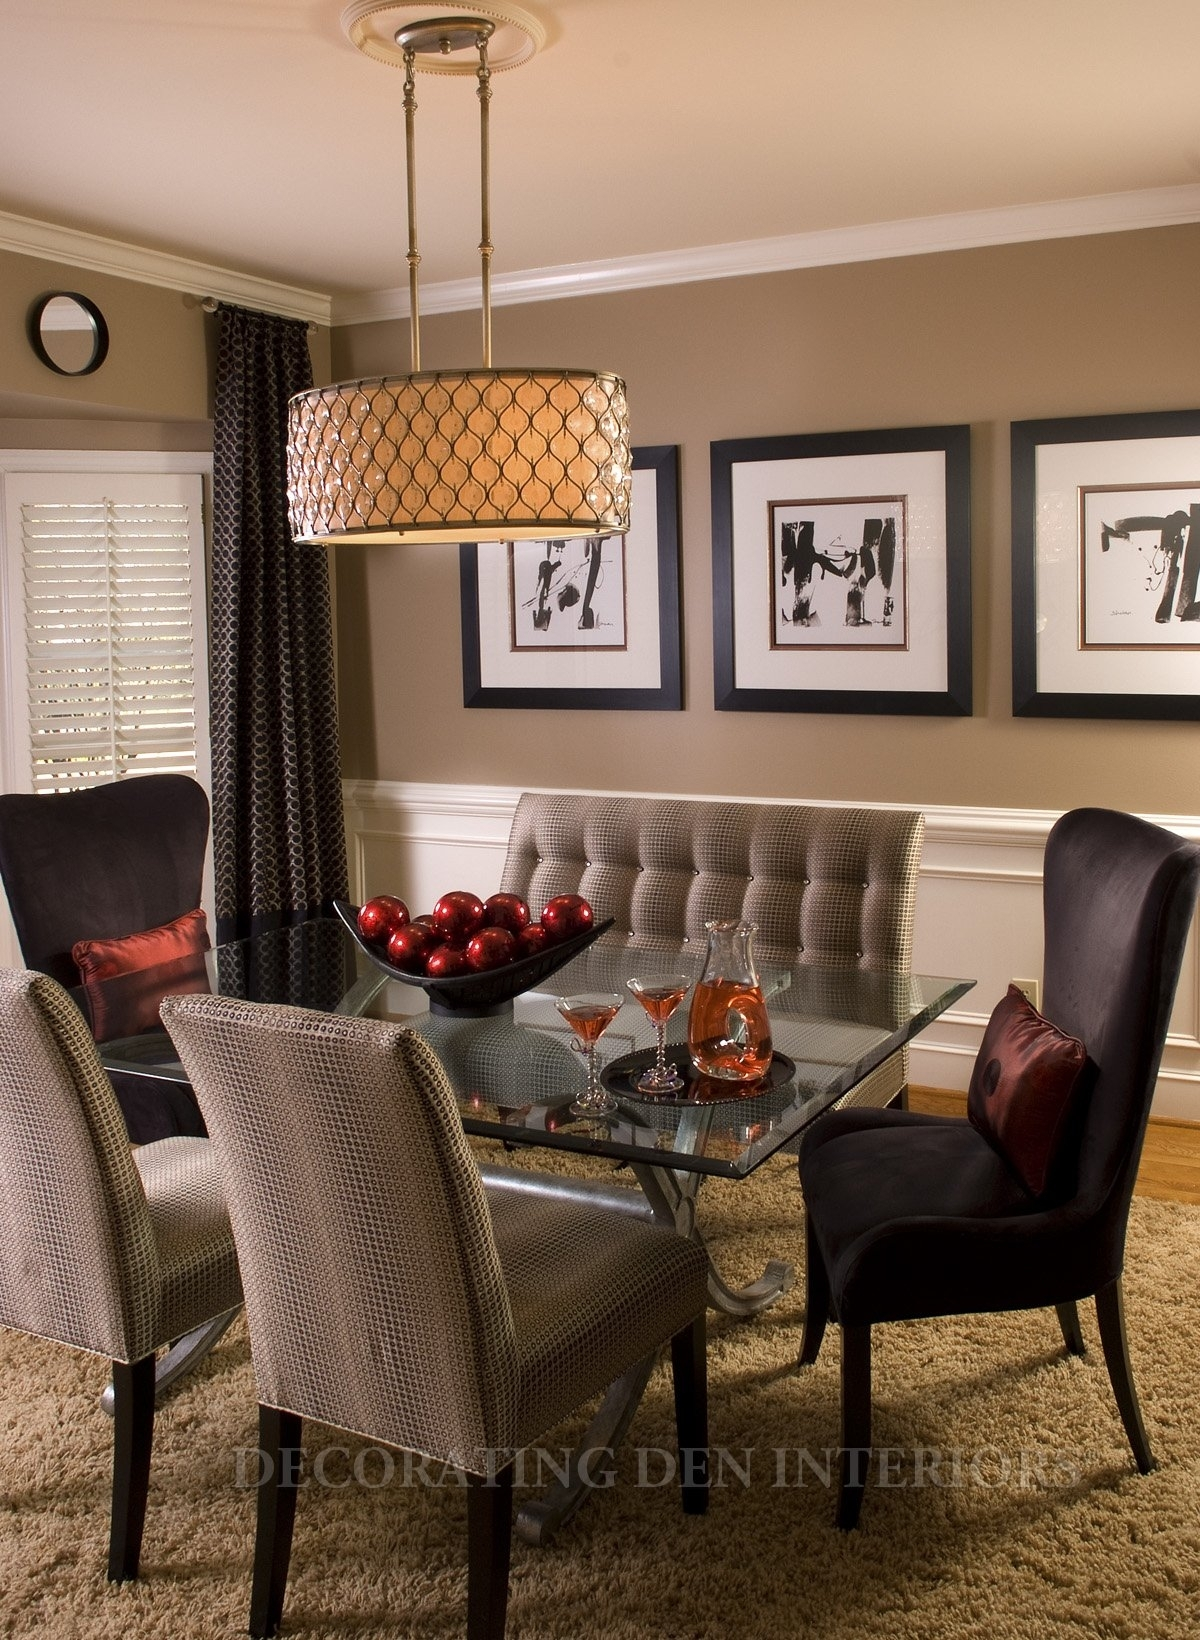 Dining Room : Dining Room Modern Walls Wall Furniture Art Regarding Most Current Neutral Color Wall Accents (View 3 of 15)